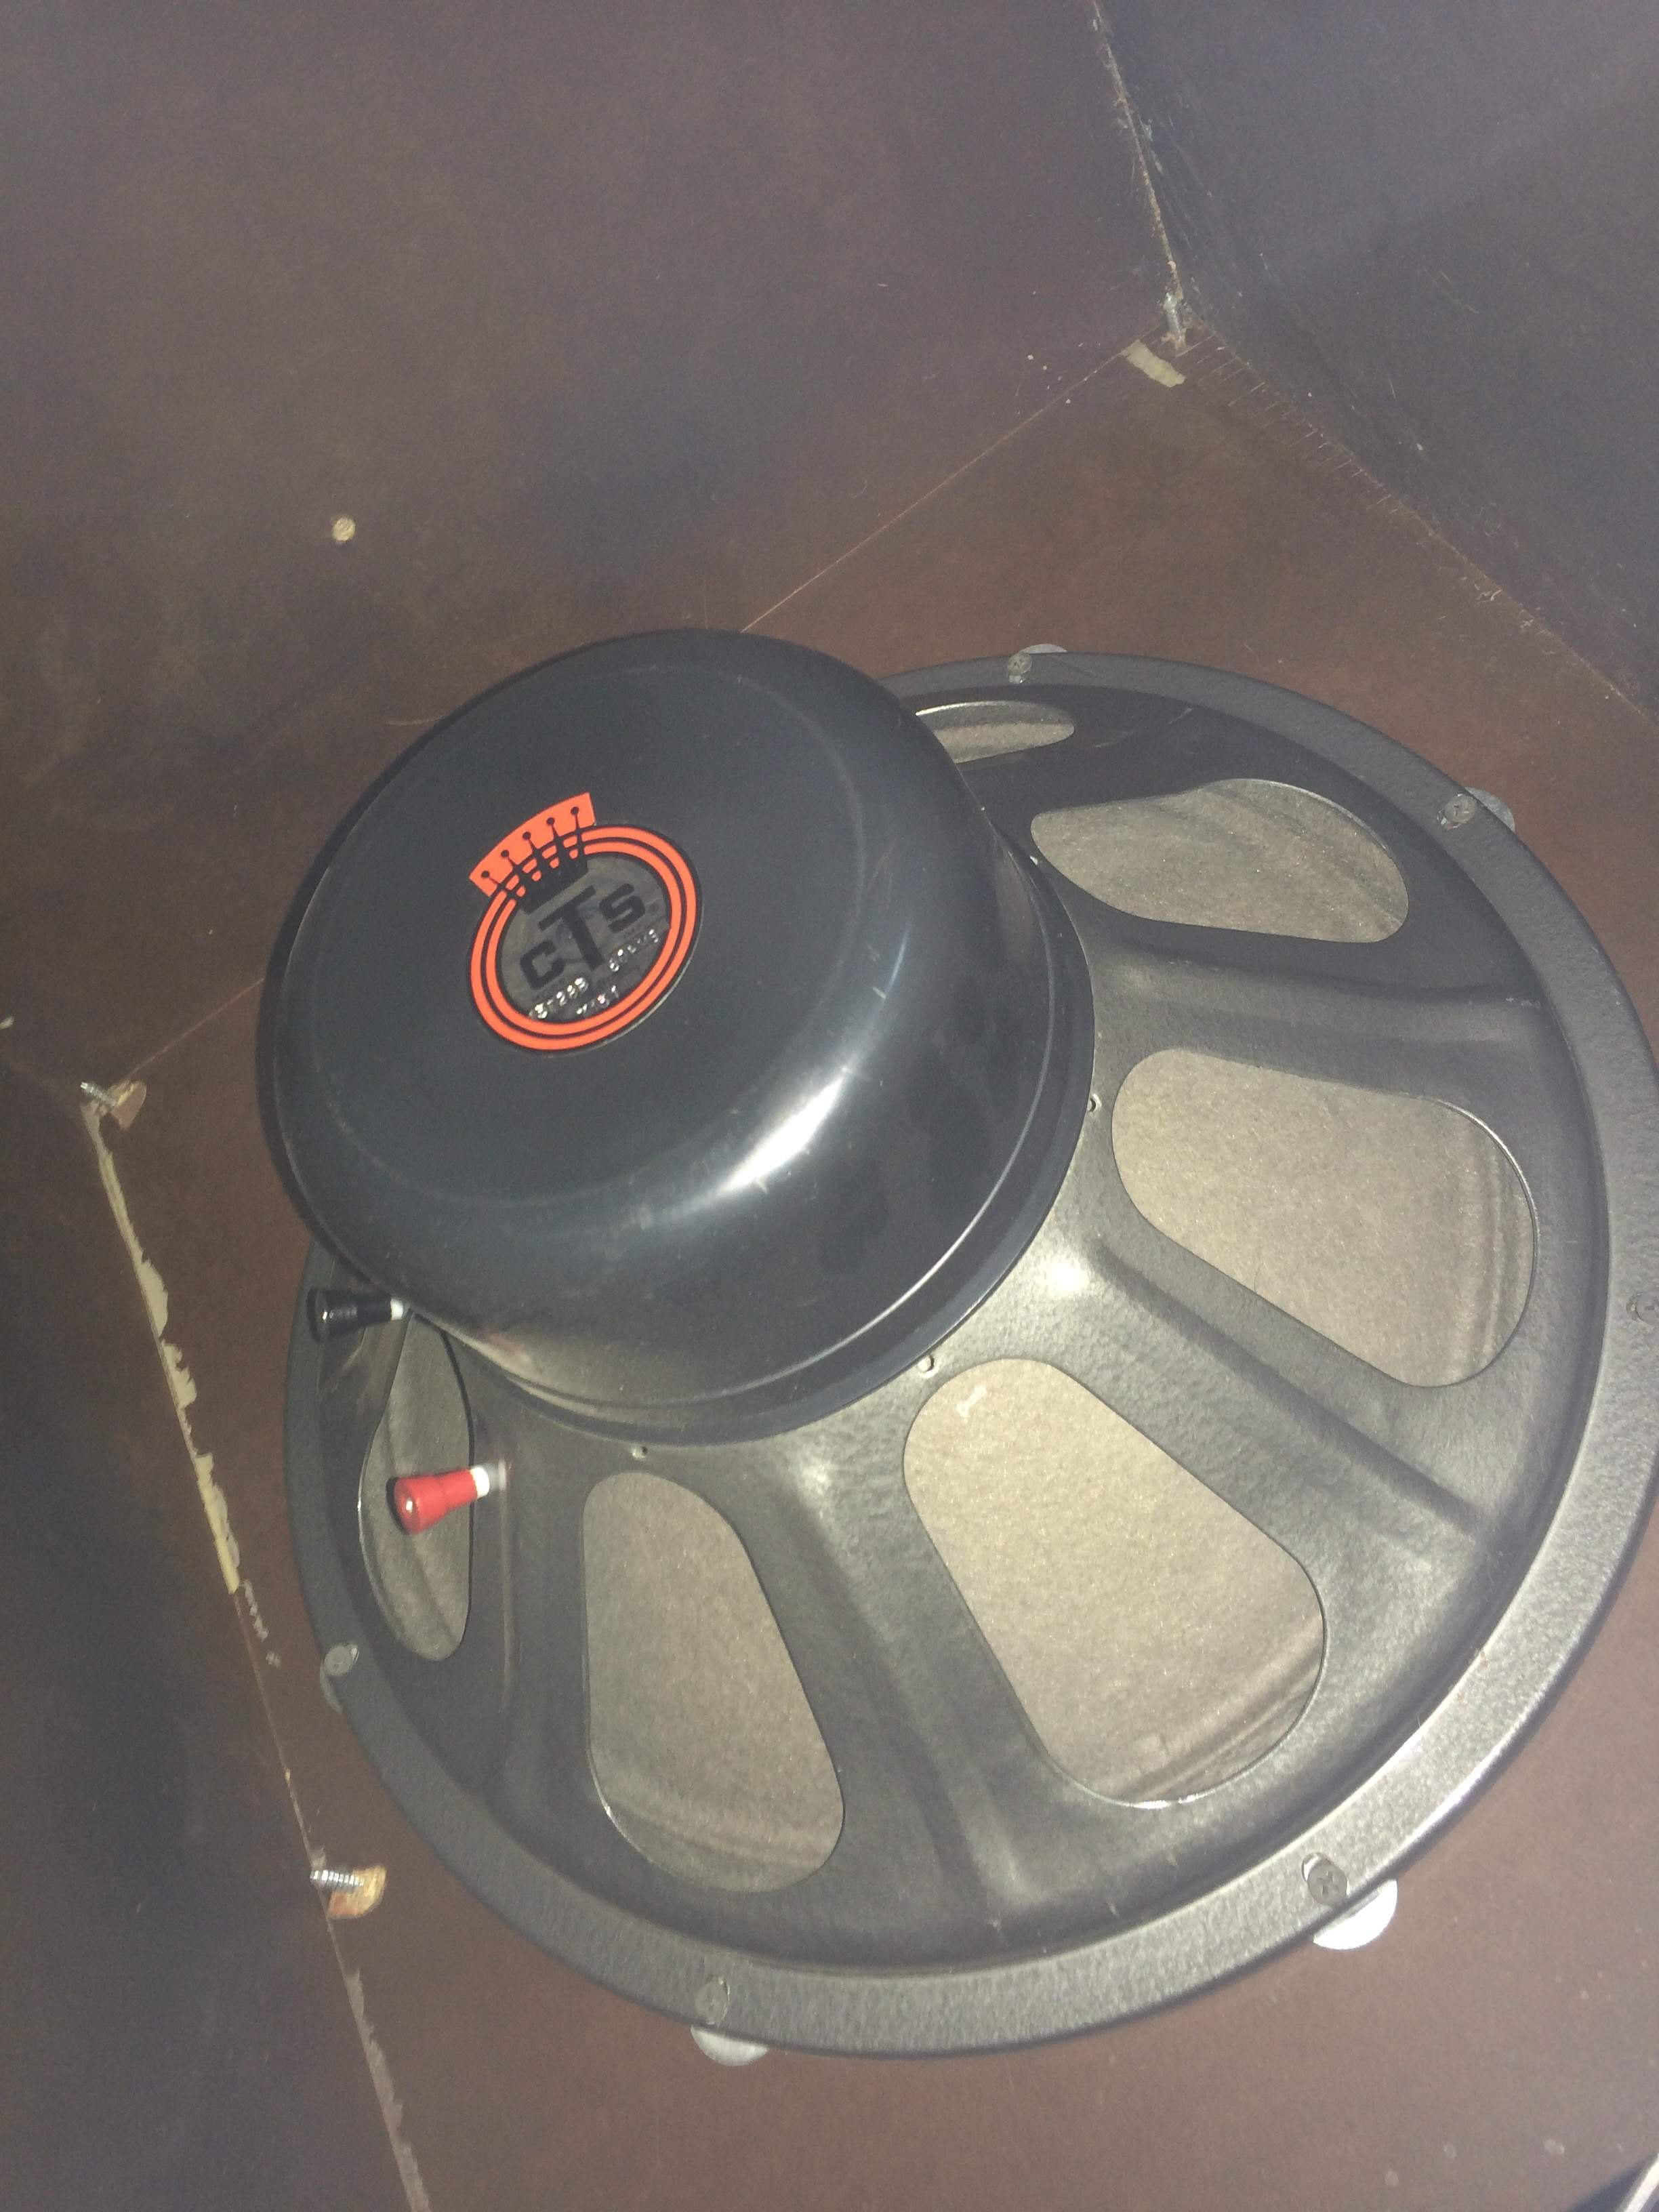 Whats This Old CTS Speaker About? Any Good  TalkBass.com